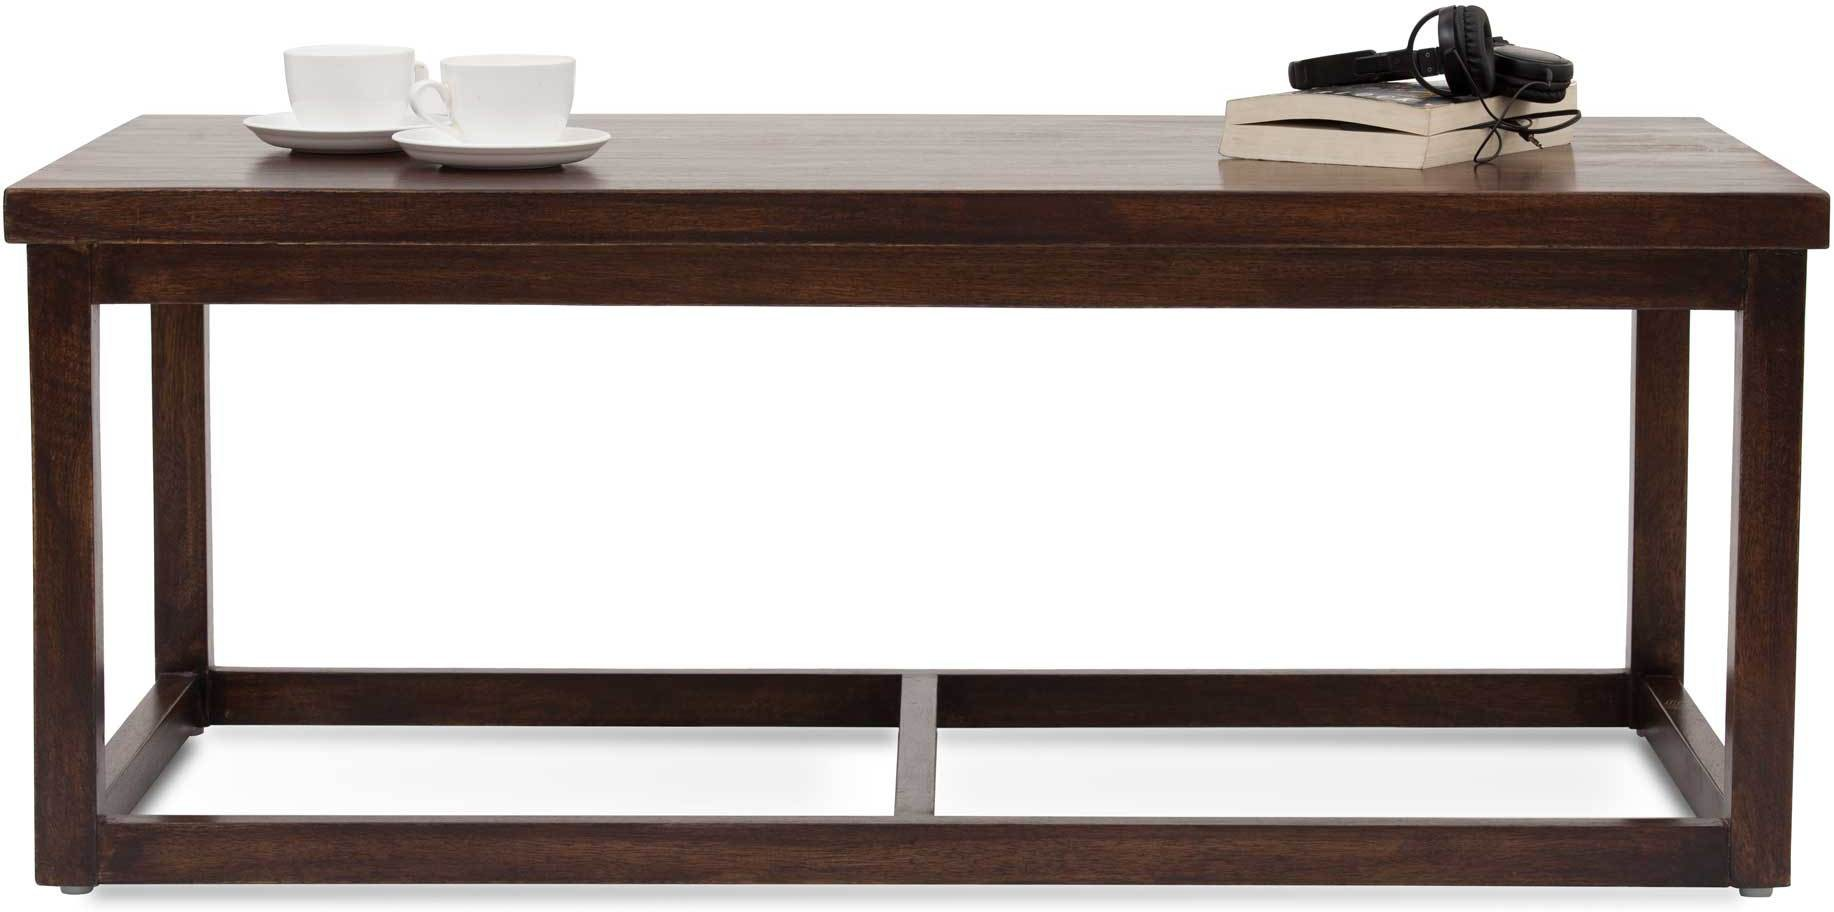 View TheArmchair Cotsworld Solid Wood Coffee Table(Finish Color - Walnut) Furniture (TheArmChair)